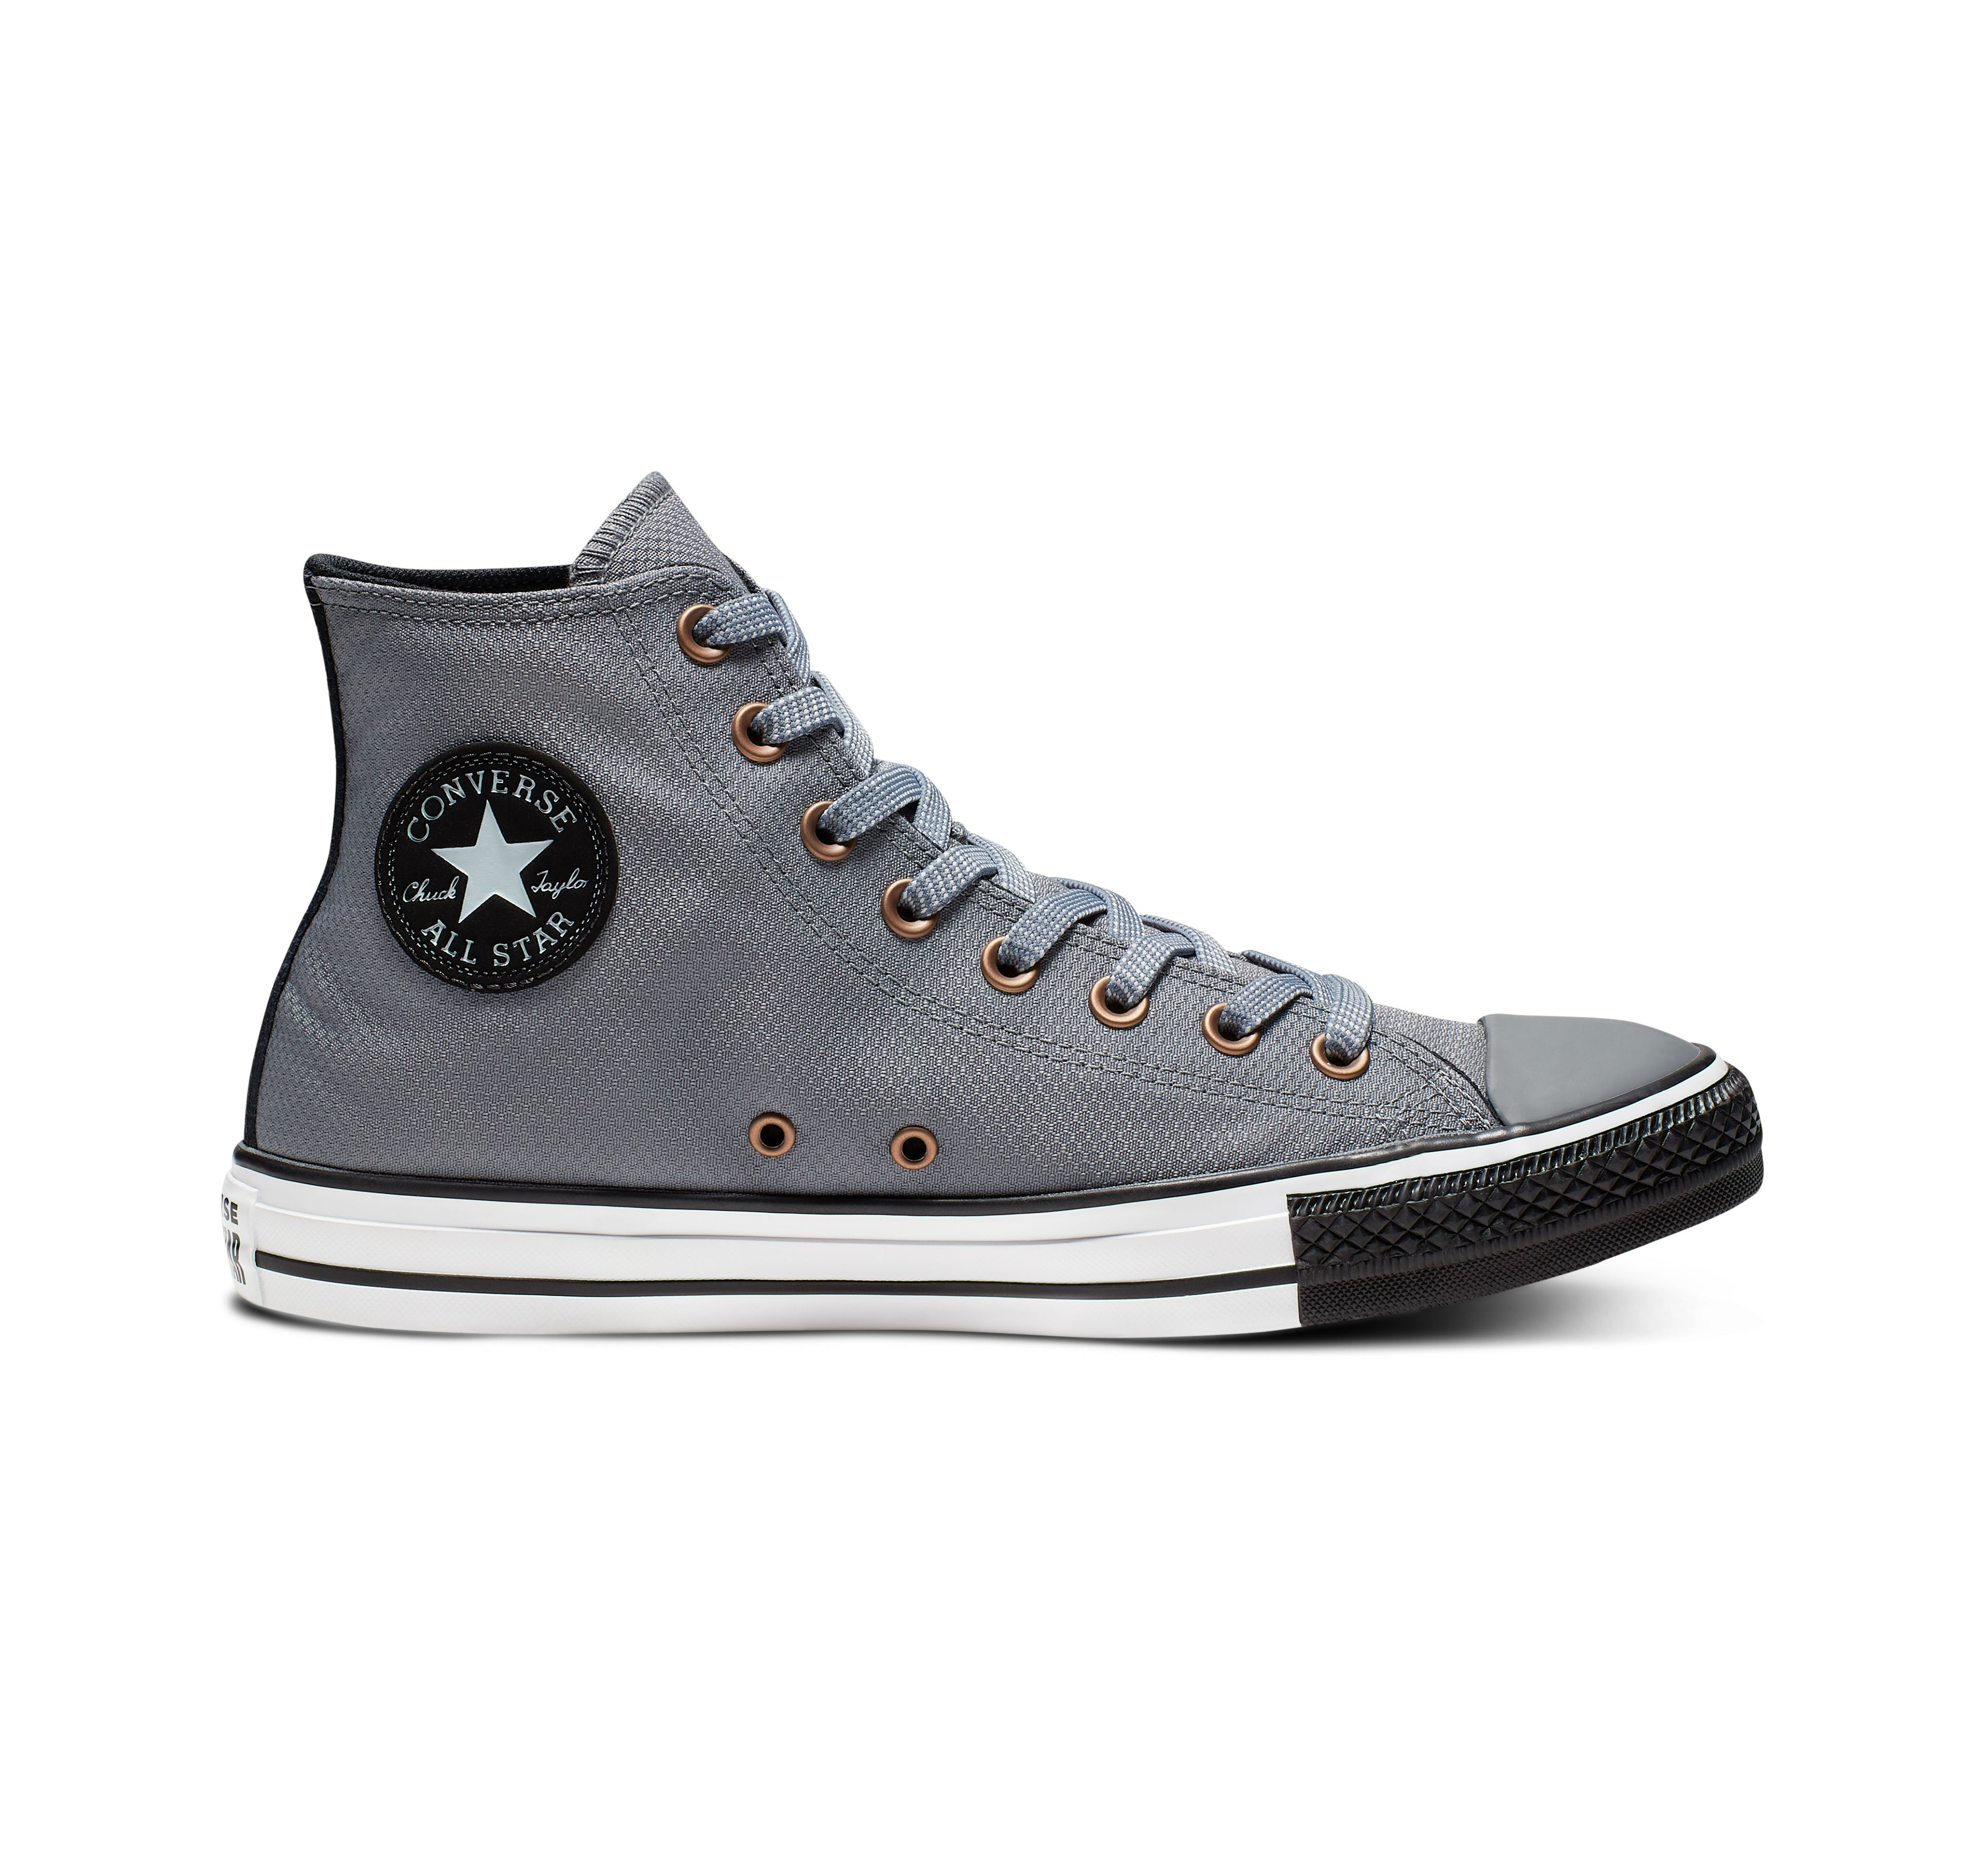 Space Utility Chuck Taylor All Star | Chuck taylors, Custom